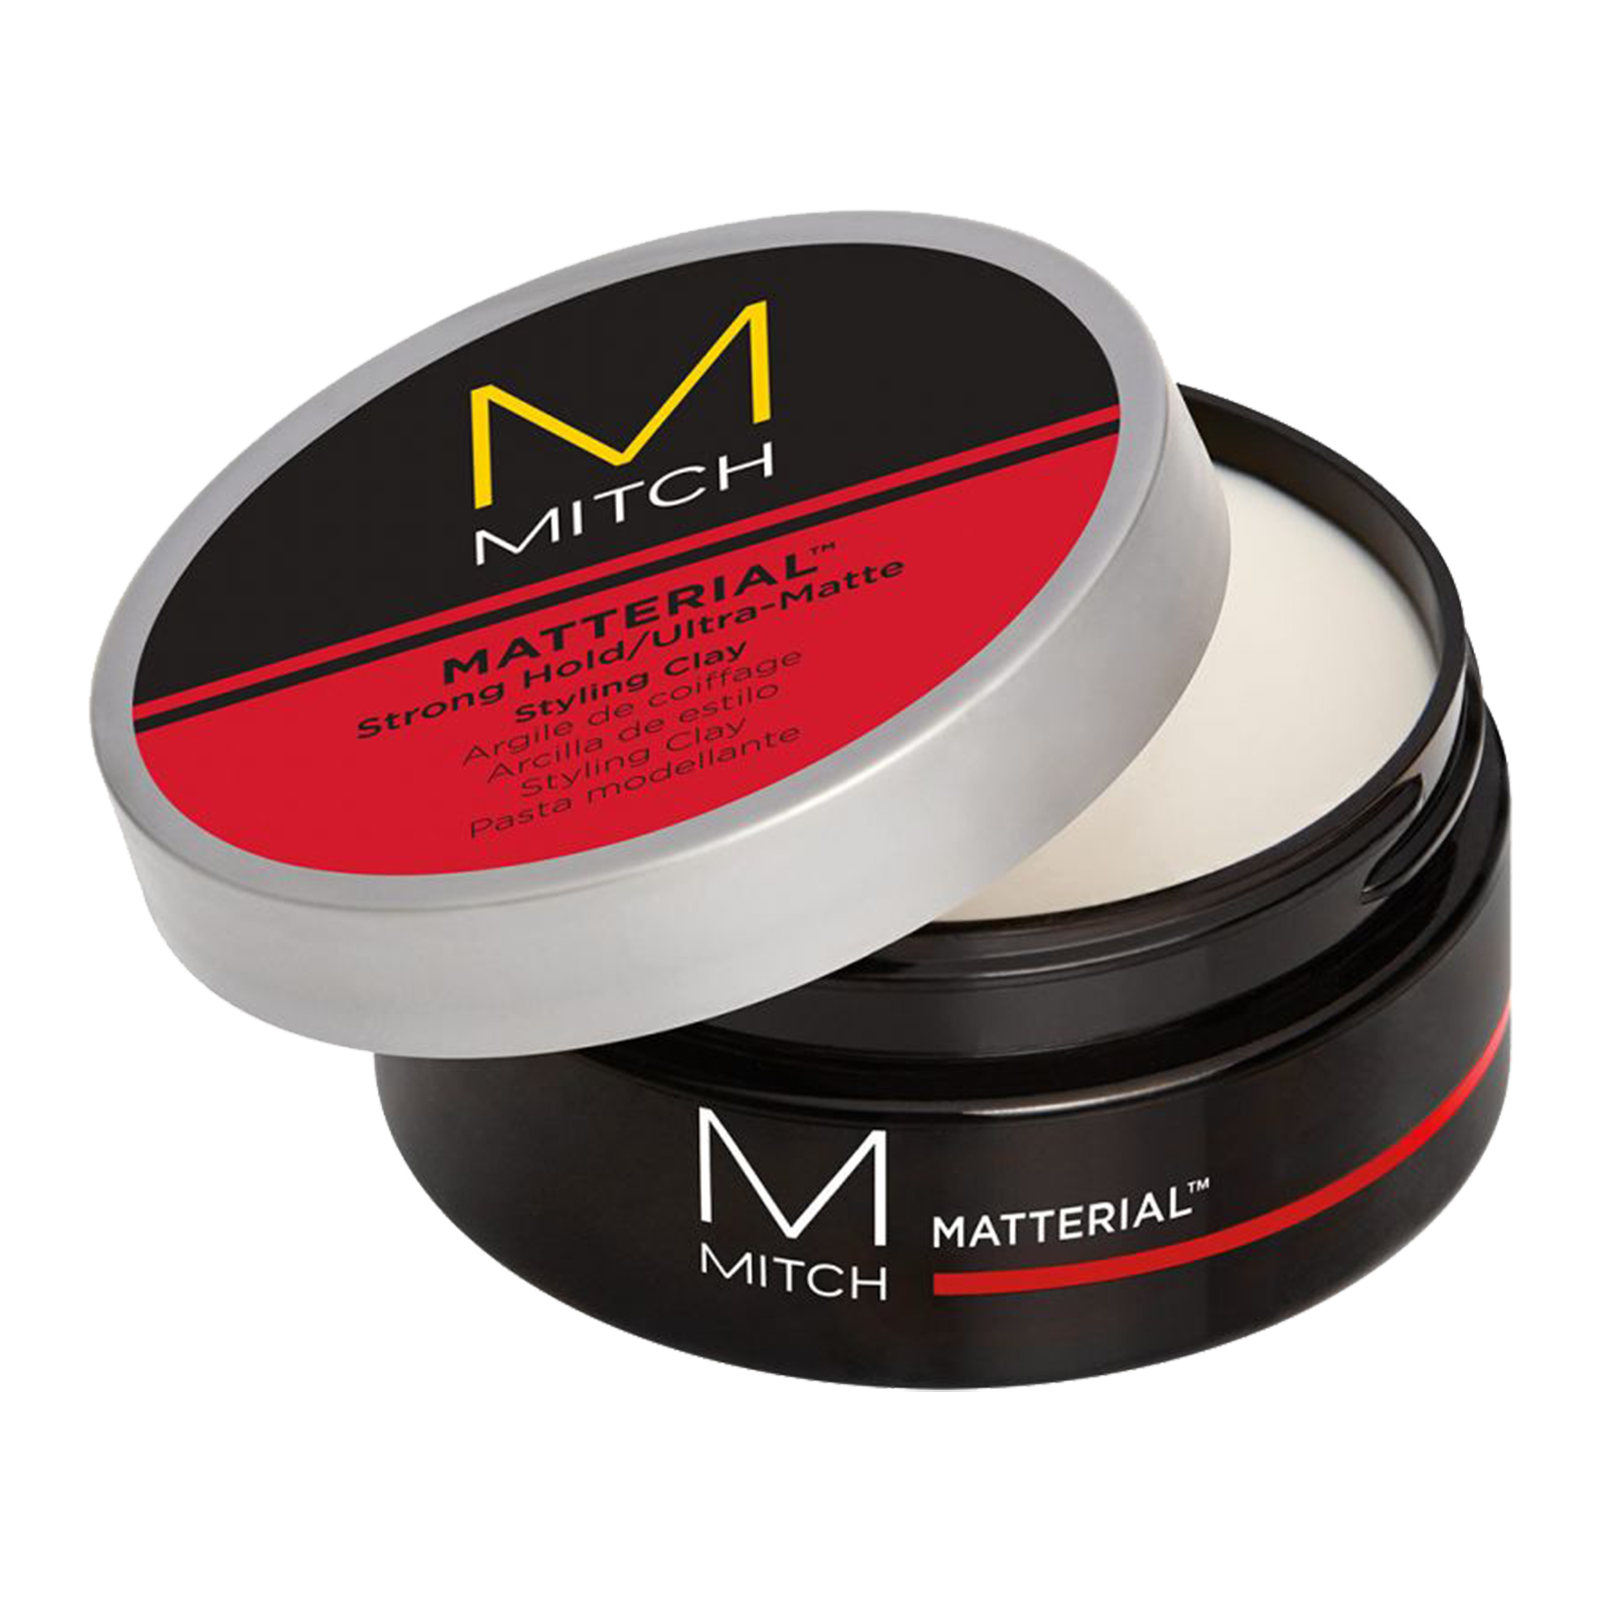 Mitch Matterial >> Matterial Strong Hold - Ultra Matte Styling Clay - John ...